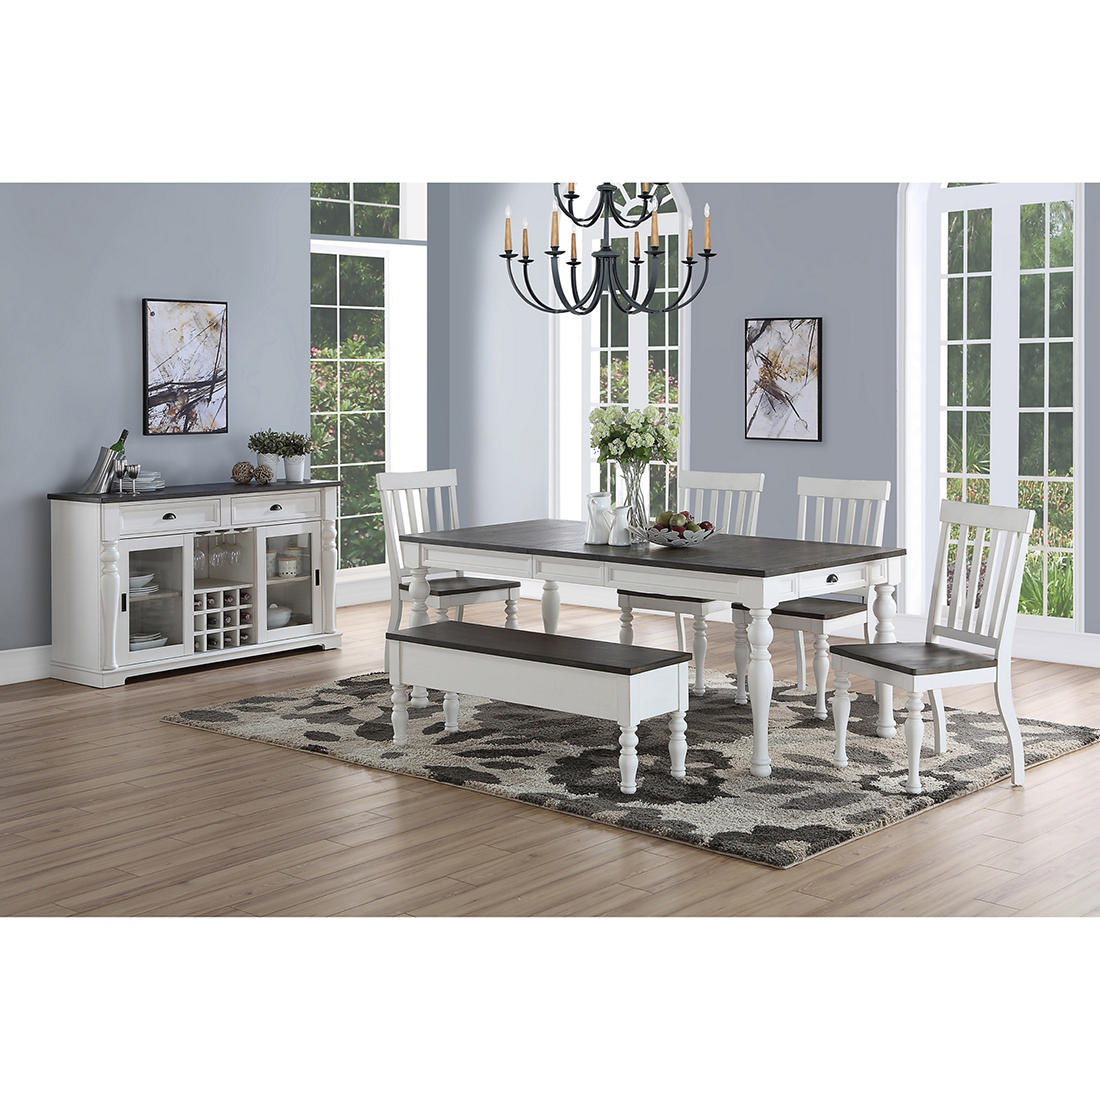 Denison 6 Pc Two Tone Dining Room Set